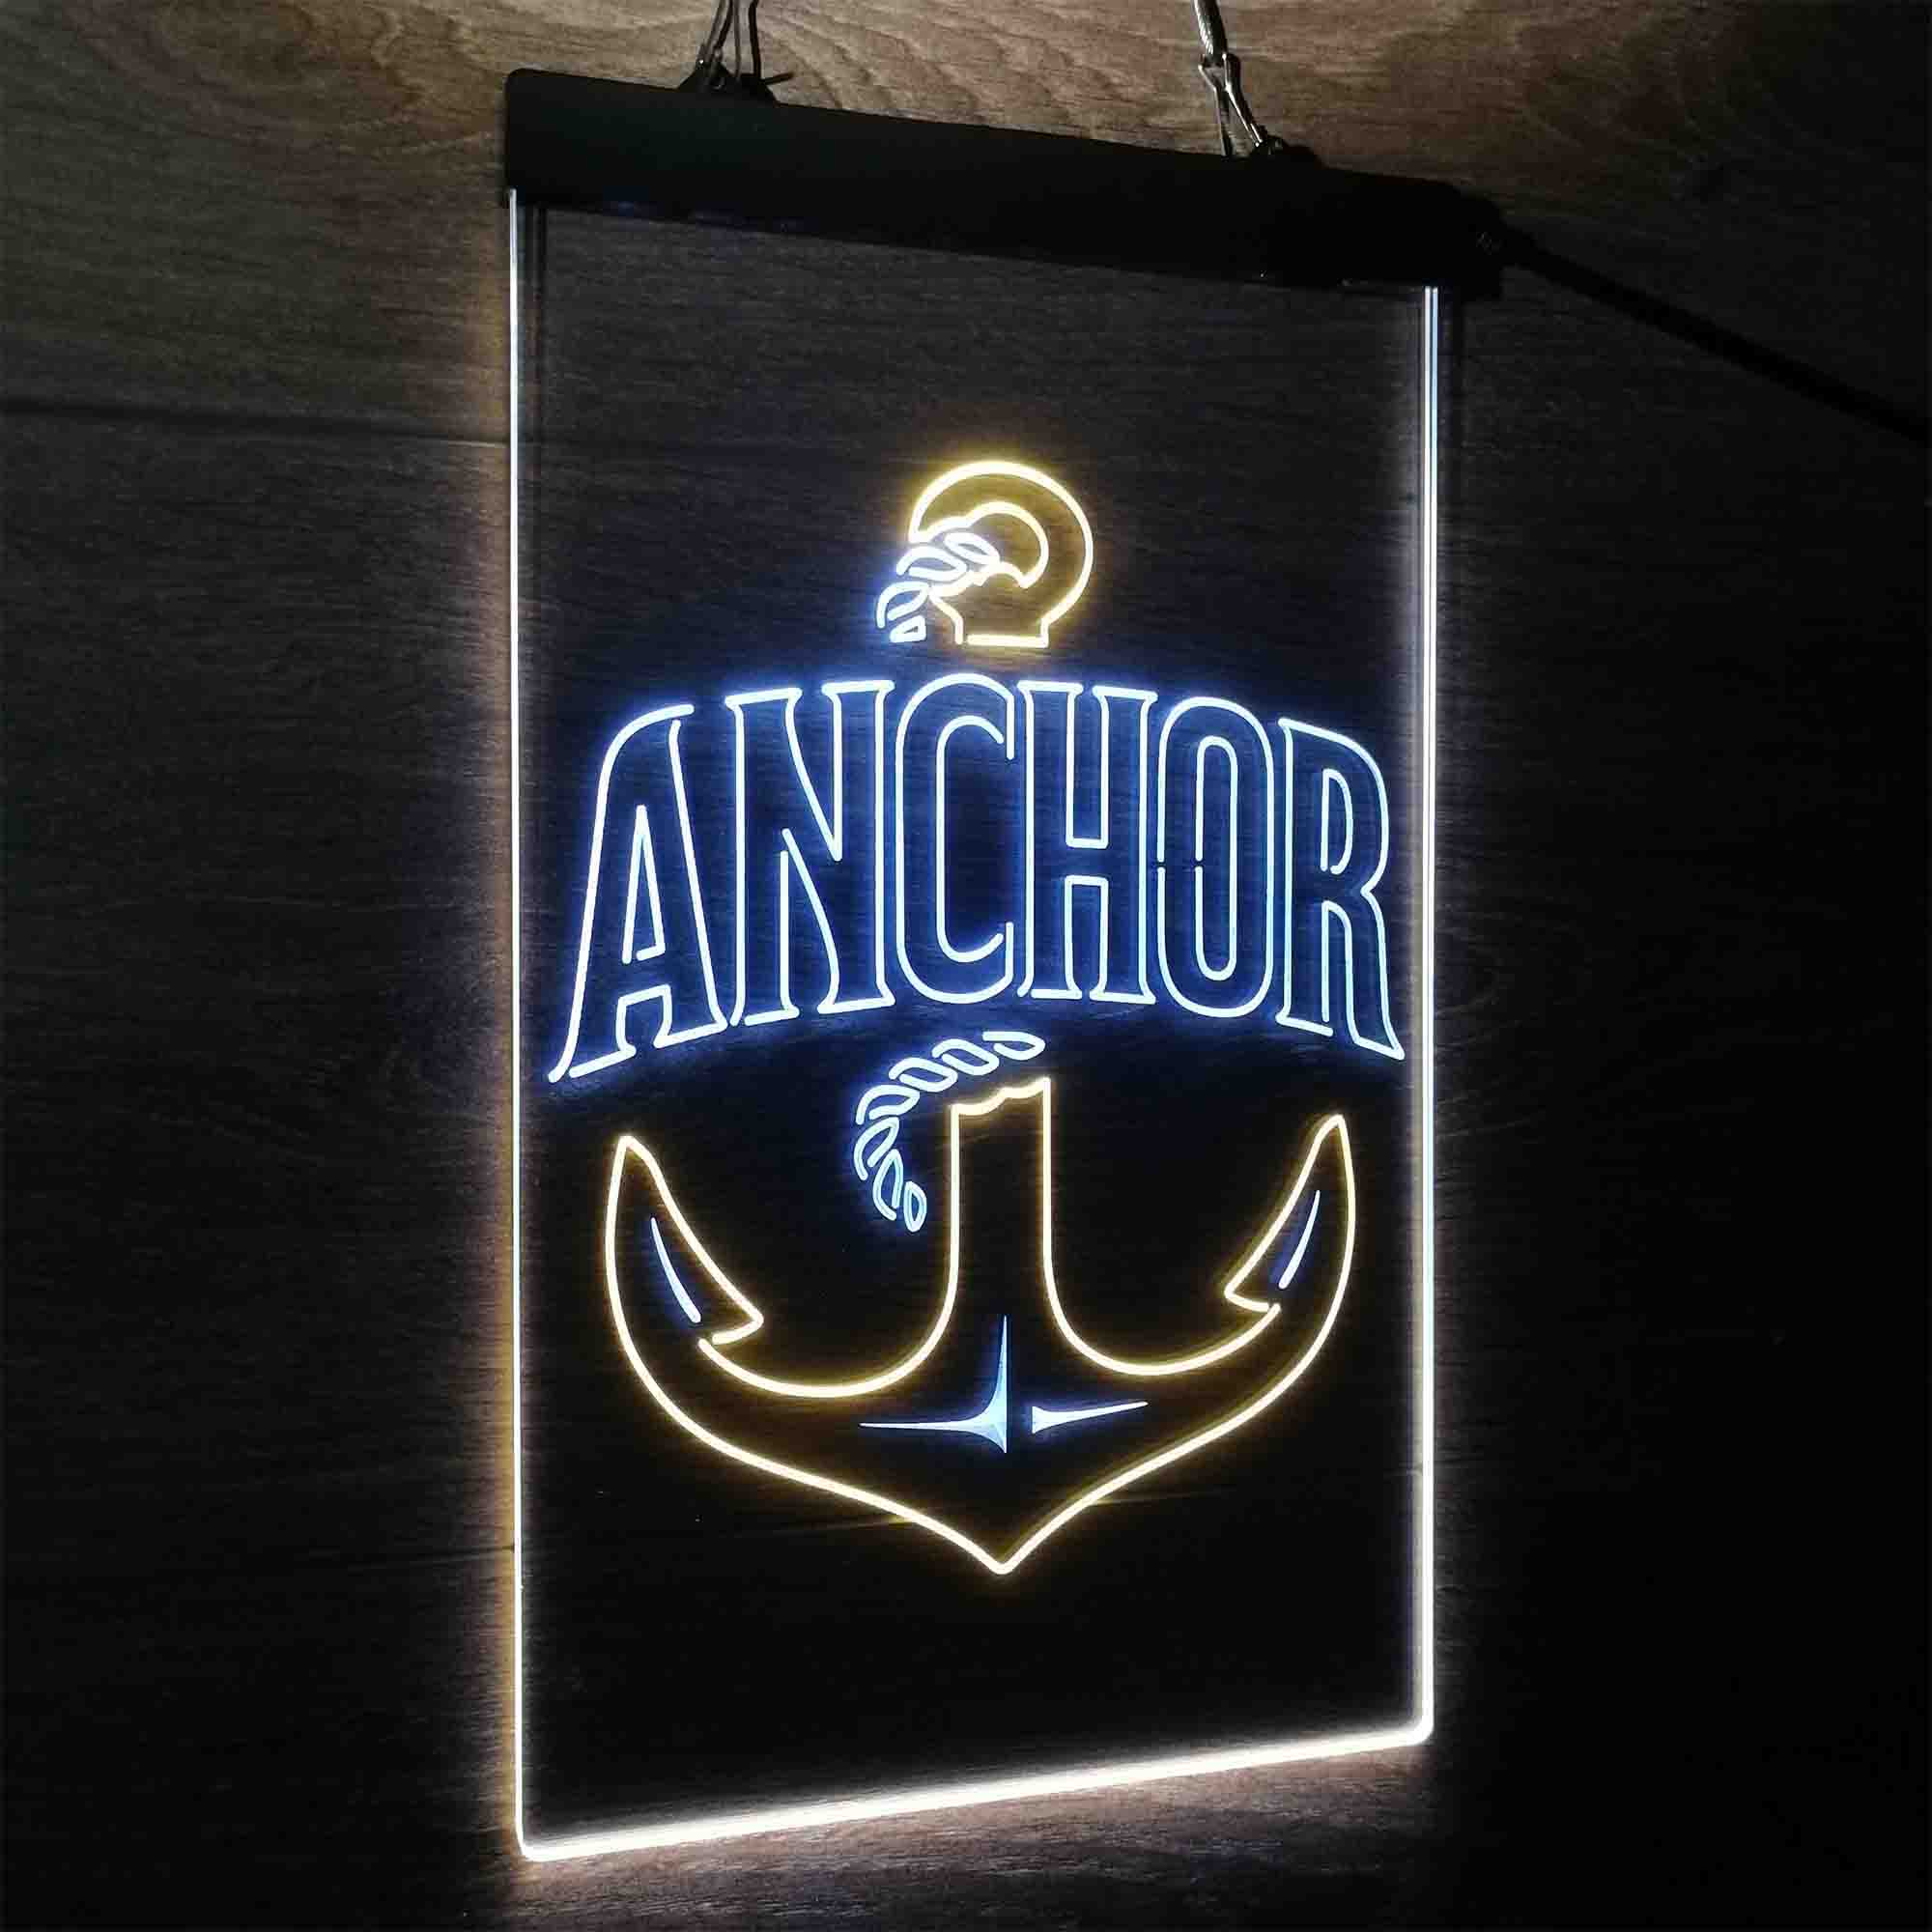 Anchor beer Neon-Like LED Sign